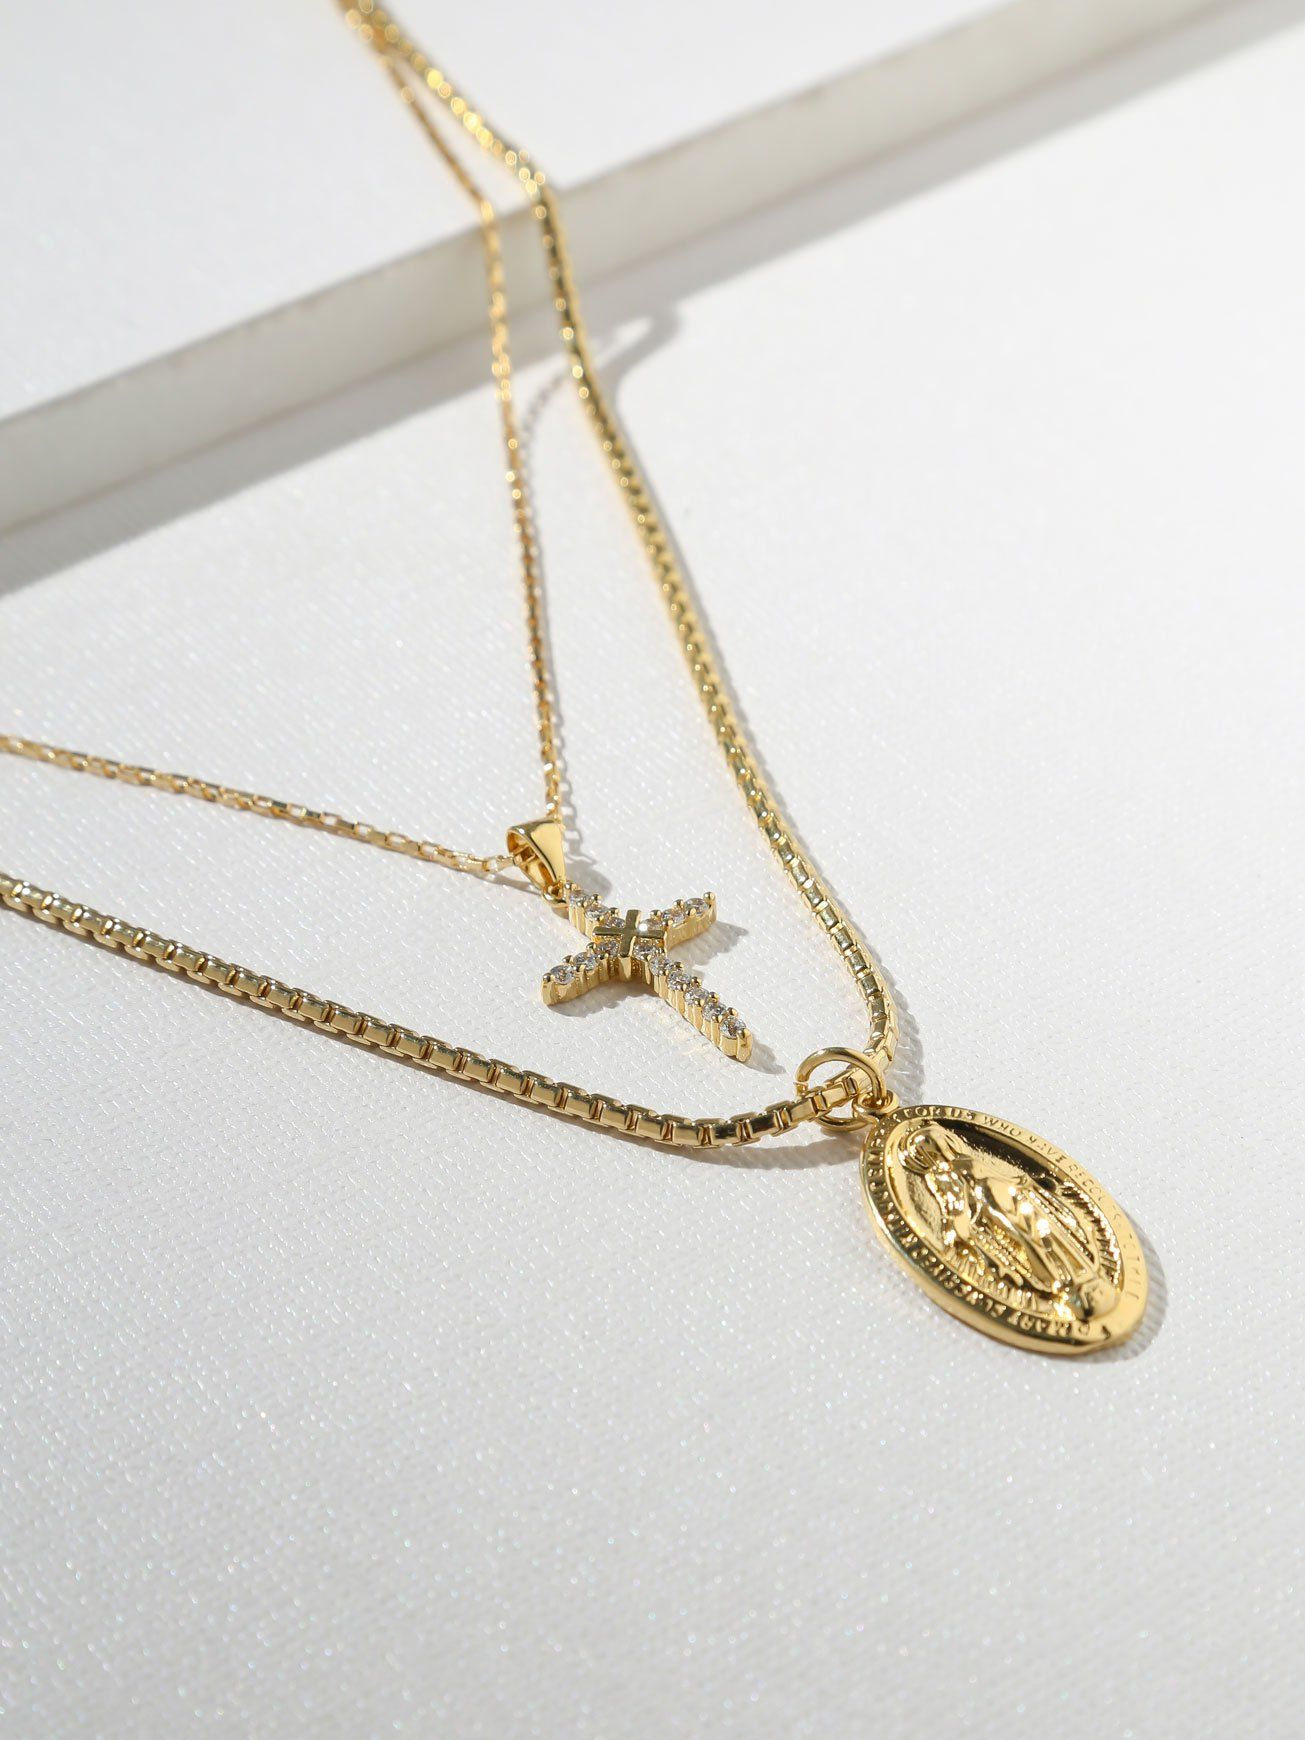 Religious Cross Madonna Fashion Jewelry Necklace Long Chain Pendant For Women Fashion Necklaces & Pendants